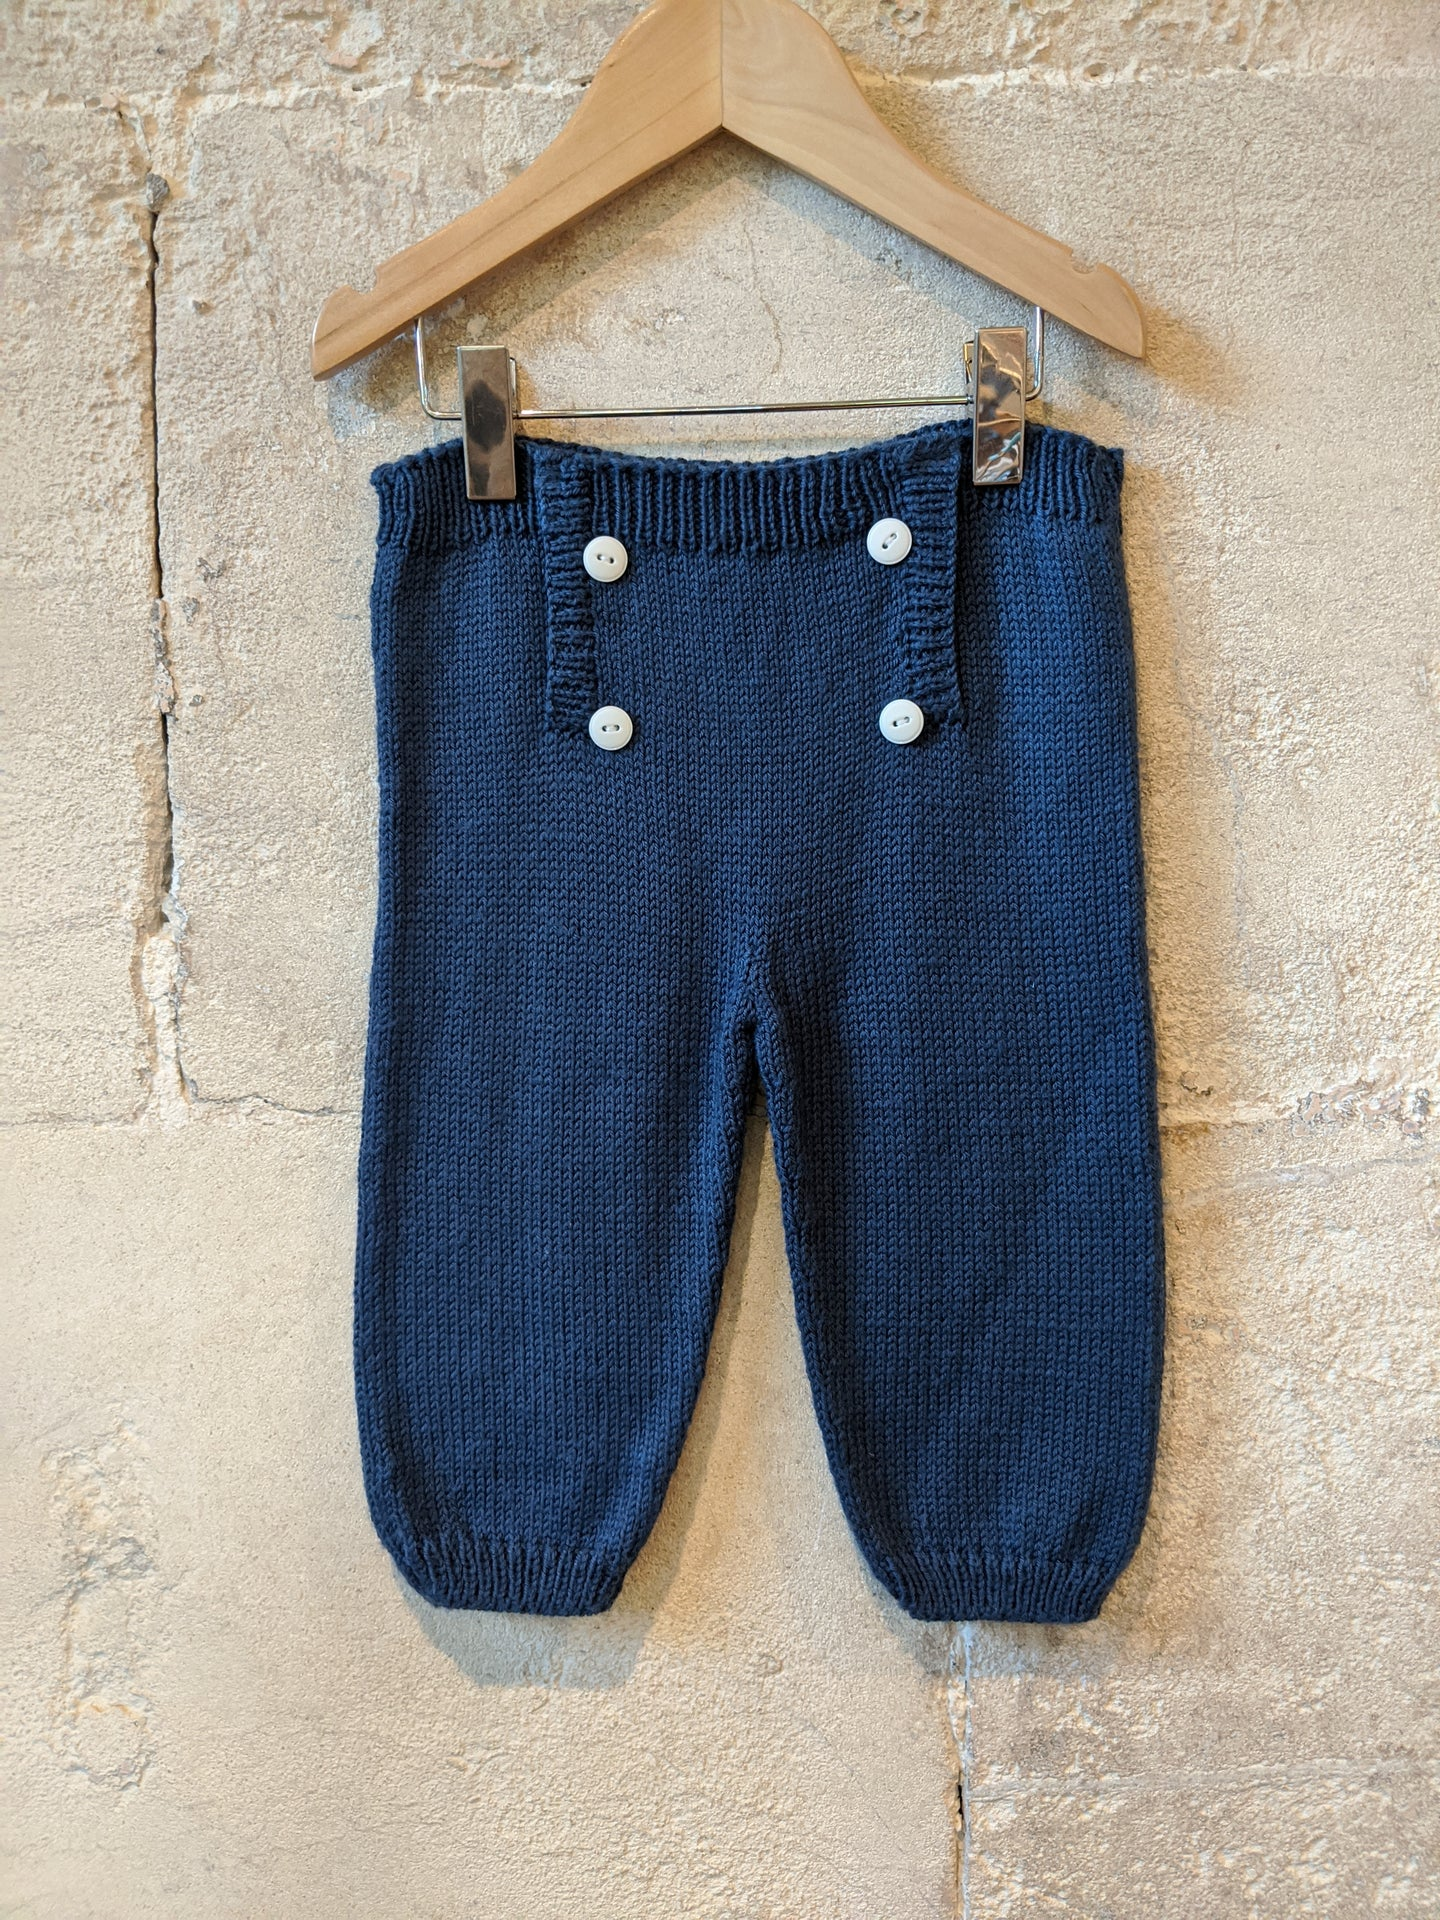 Wonderful Hand Knitted French Navy Trouser - 12 Months